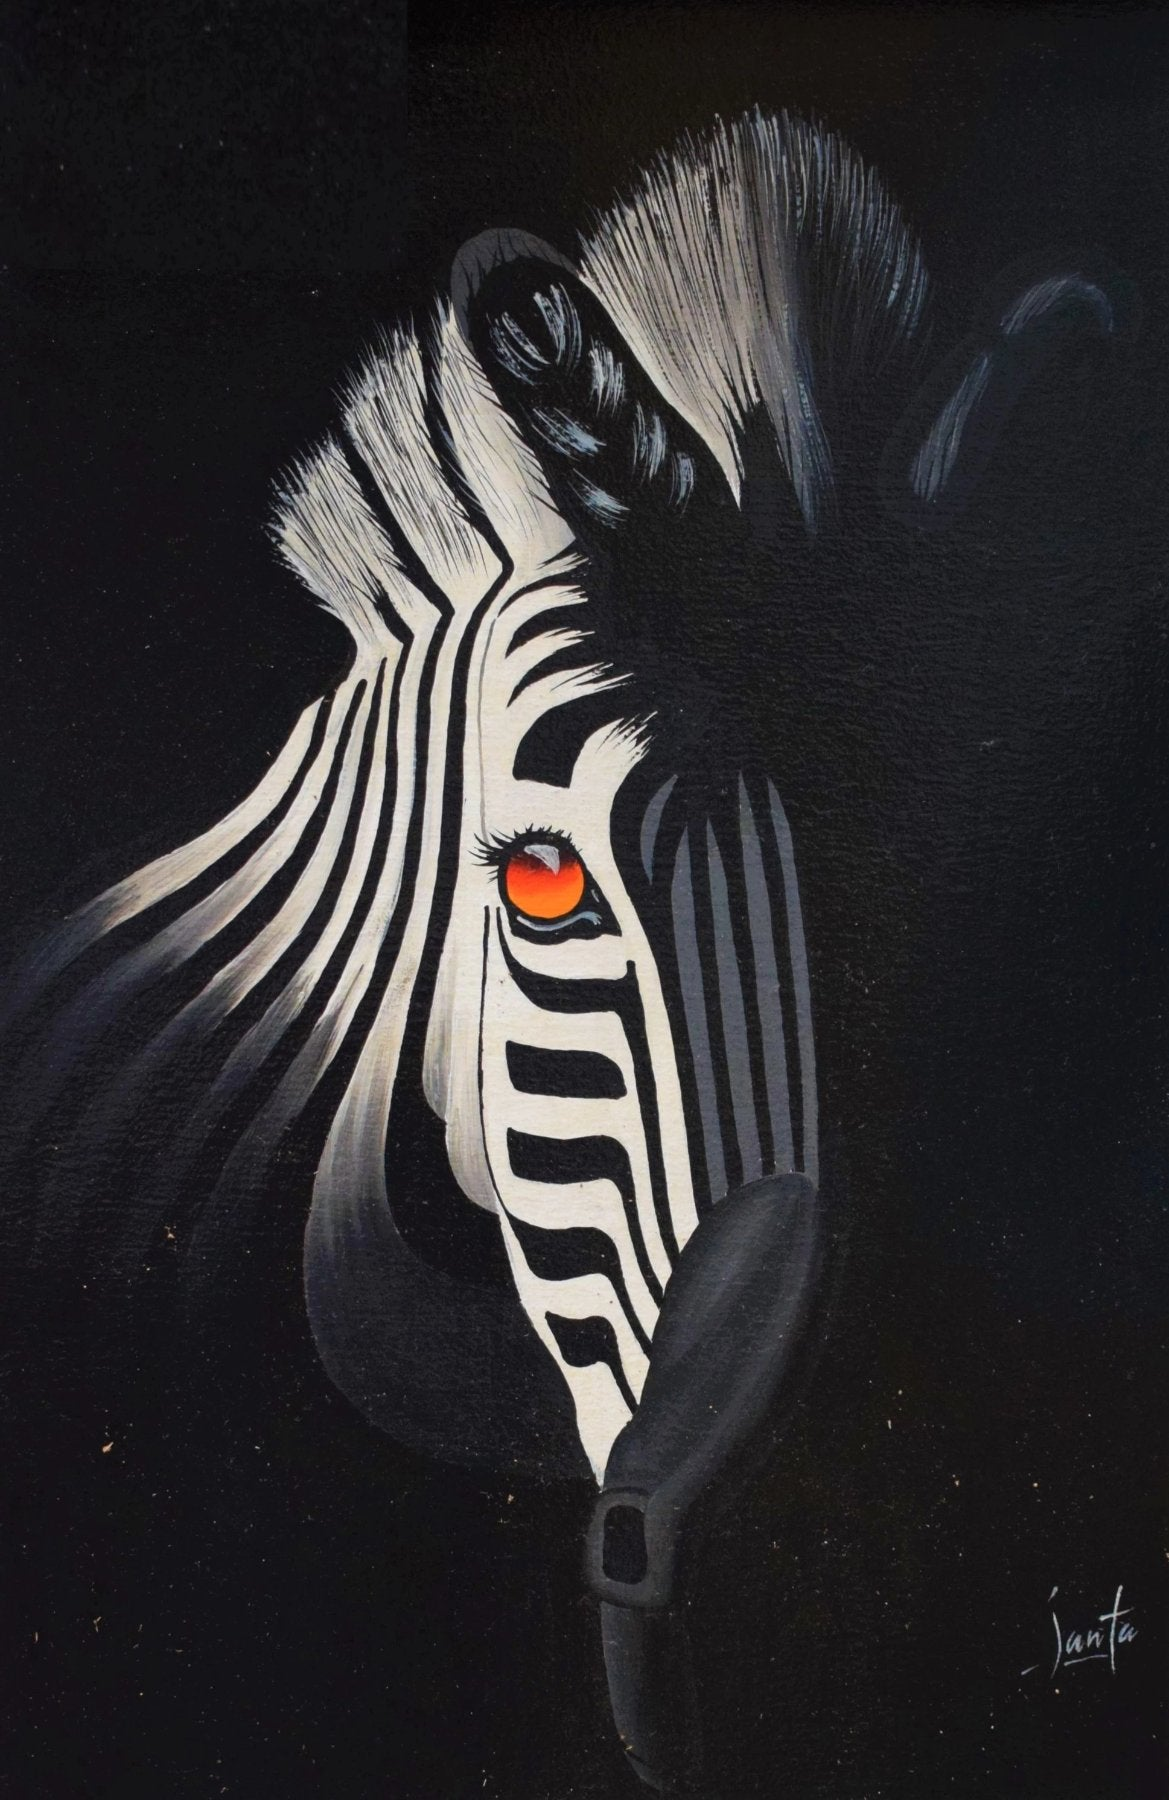 African art of zebras